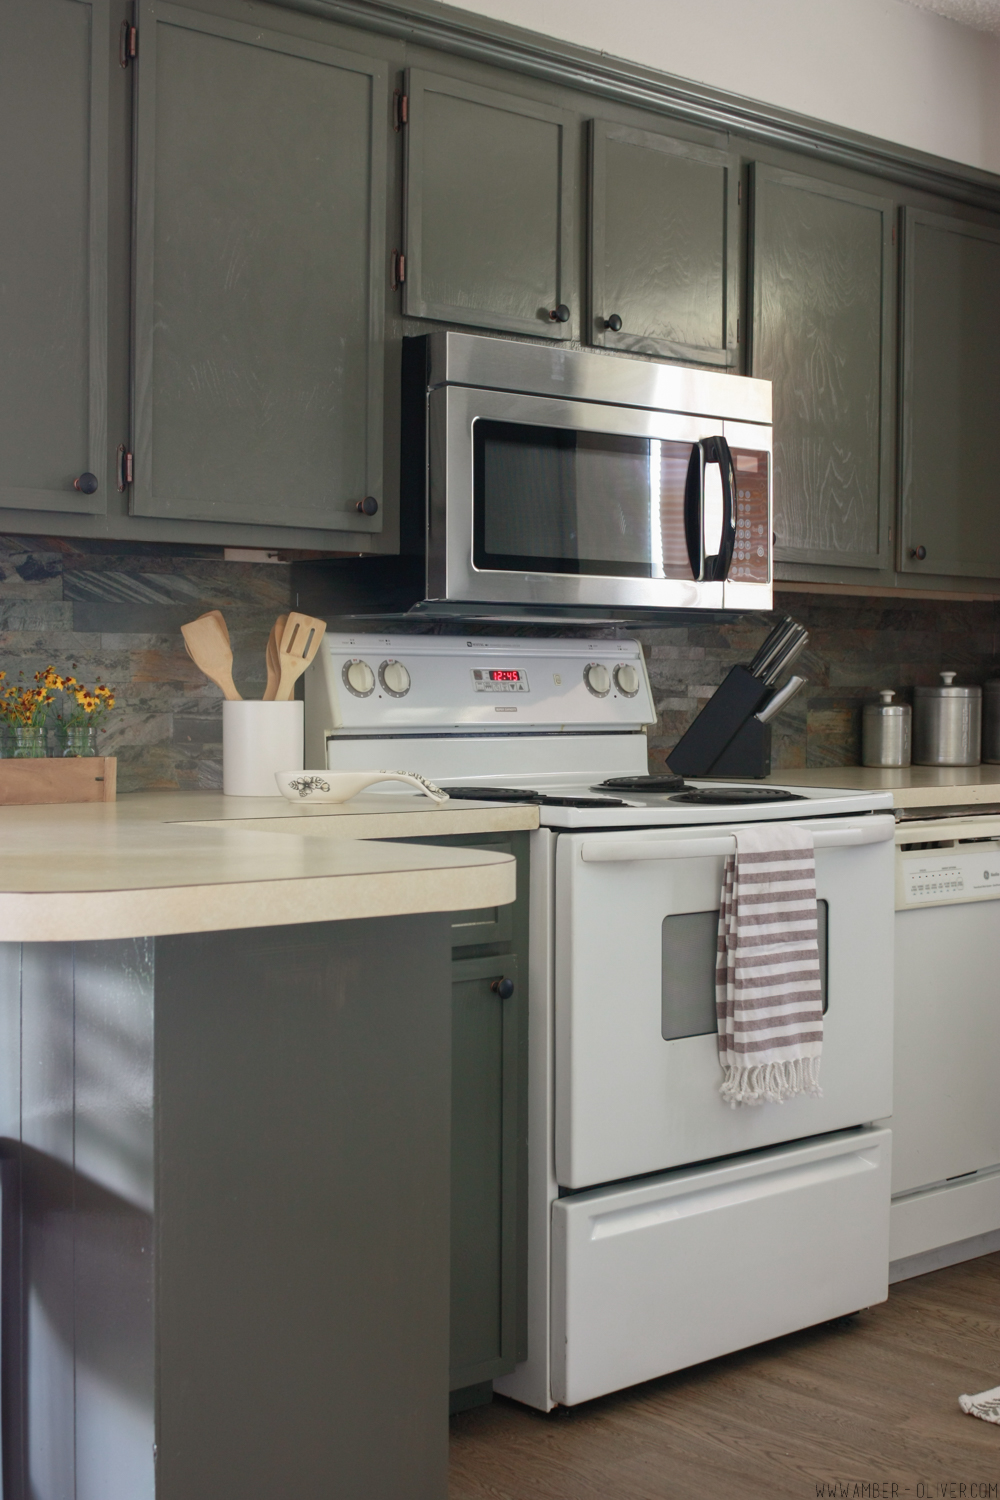 Captivating How To Update Old Kitchen Cabinets   Kitchen Remodel On A Budget!